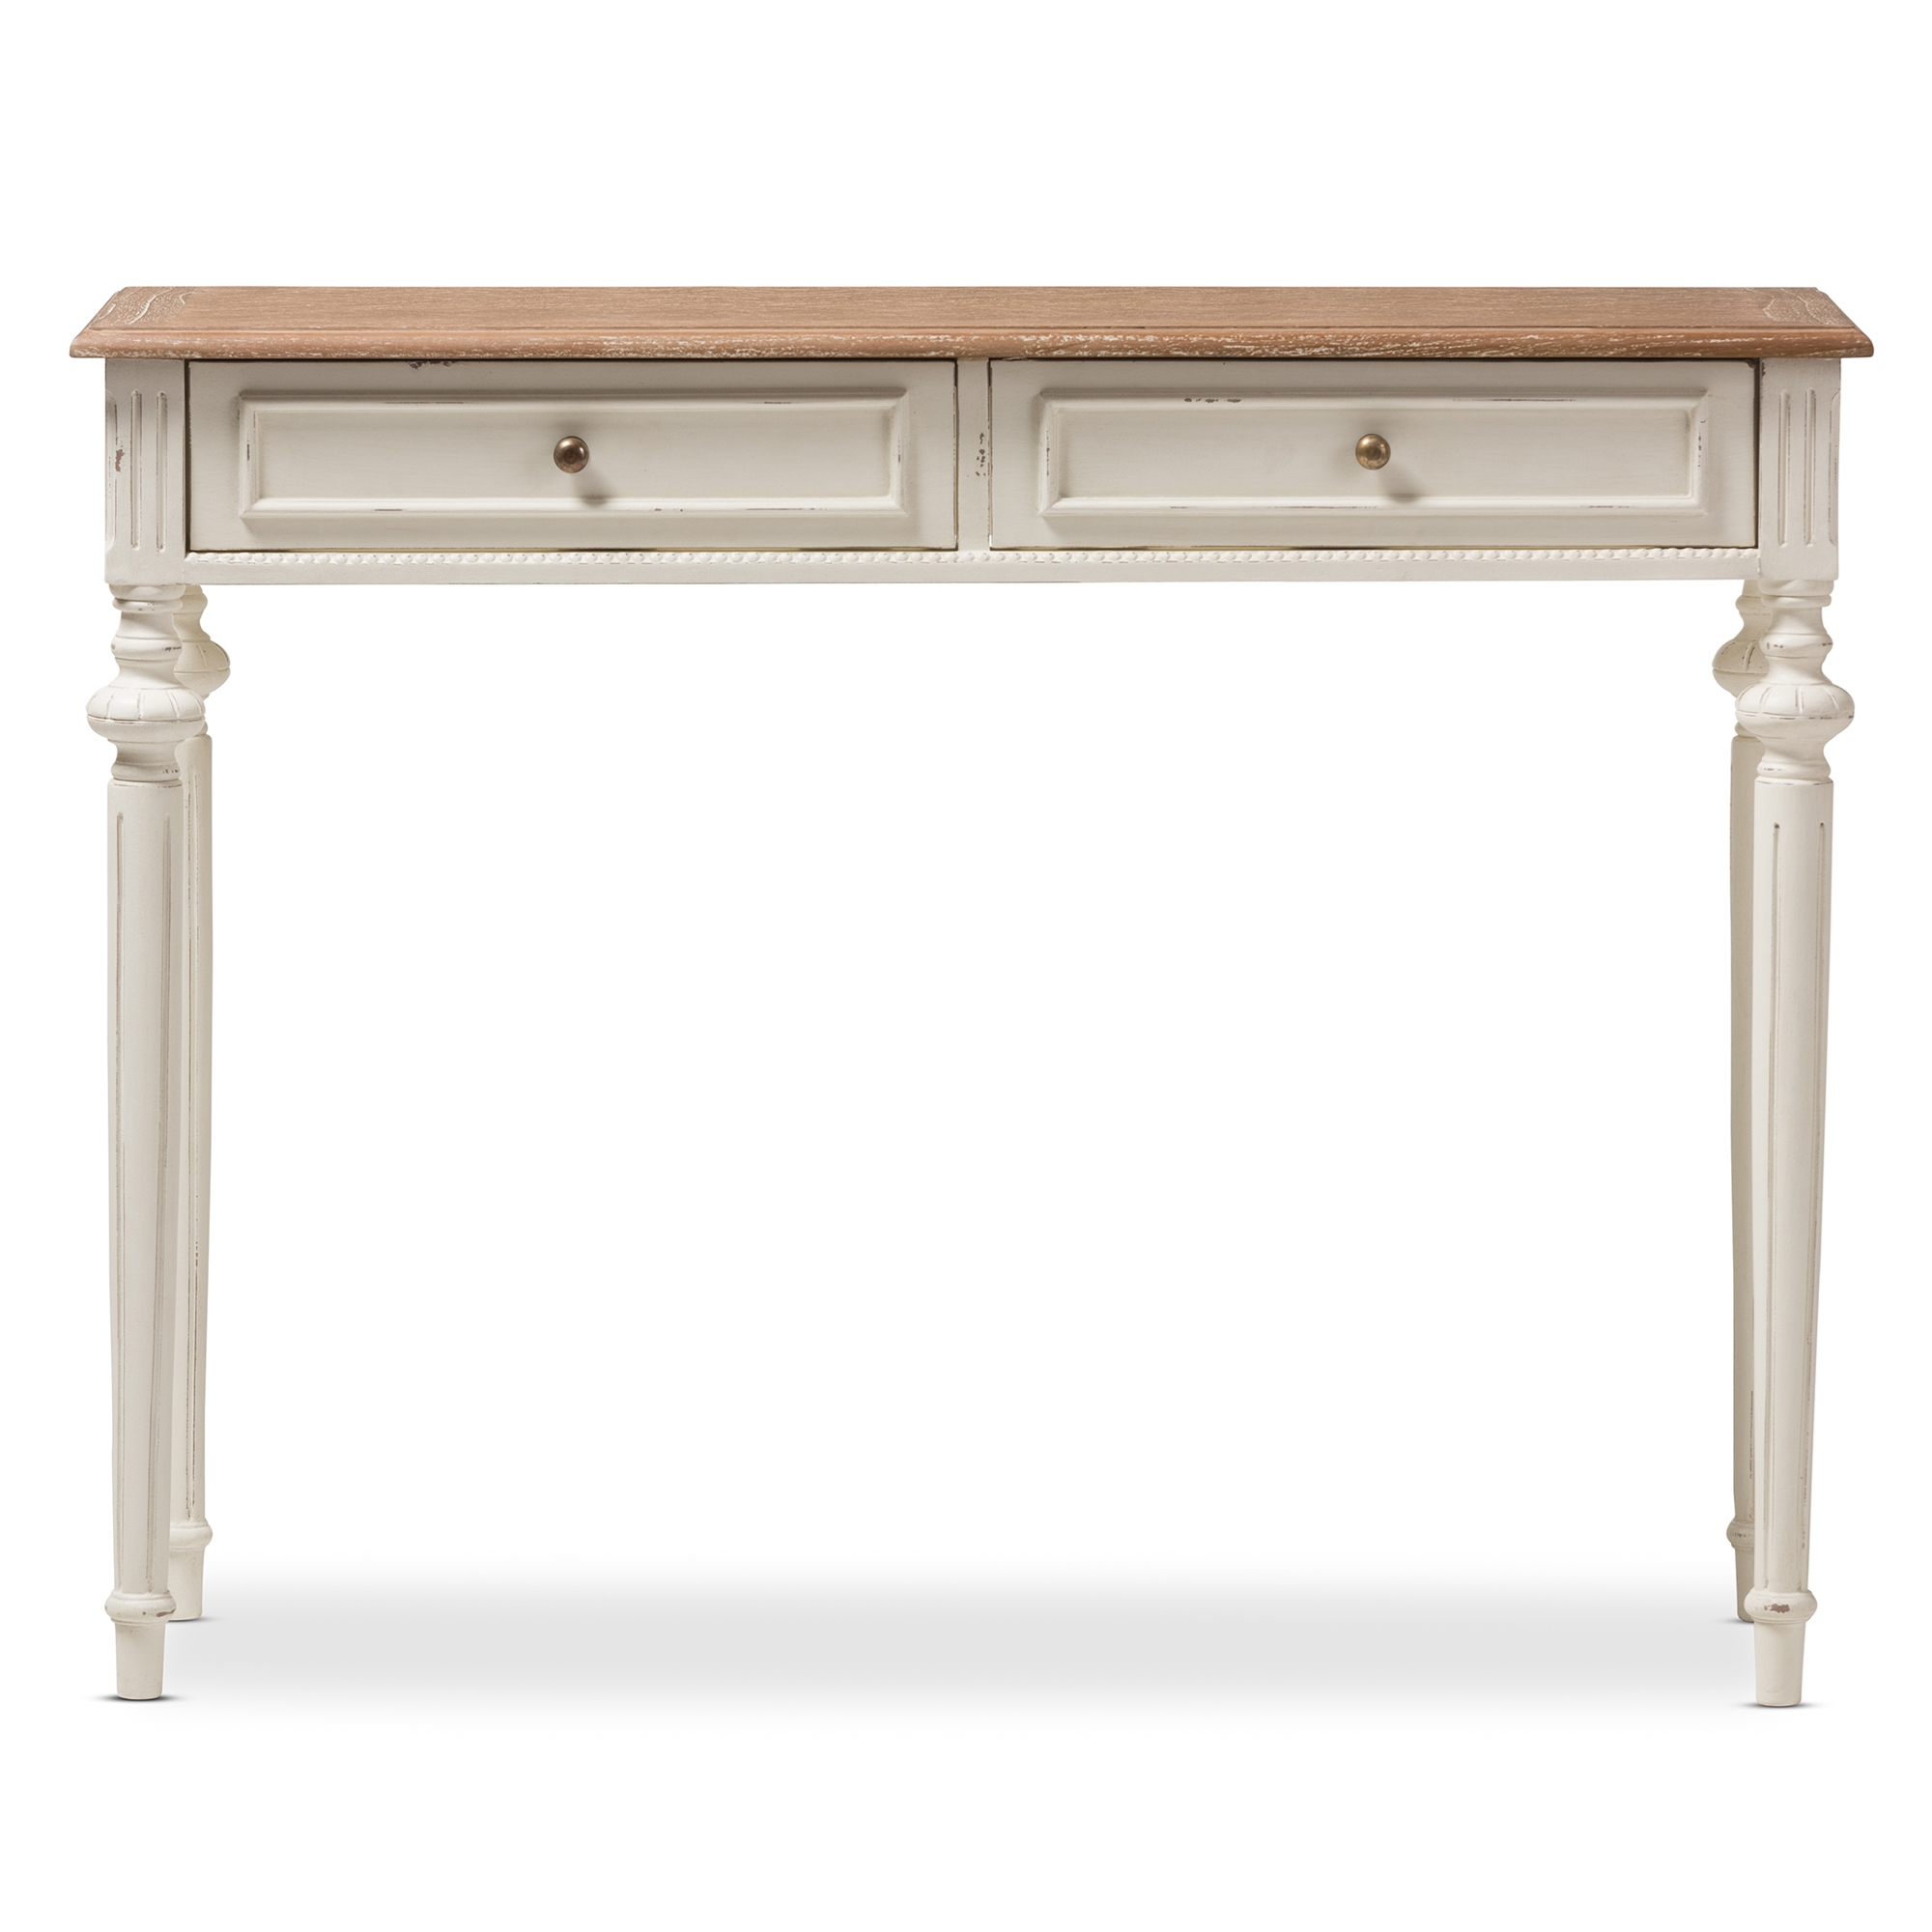 ... Baxton Studio Marquetterie French Provincial Weathered Oak And Whitewash  Console Table   PRL15VM(AR) ...